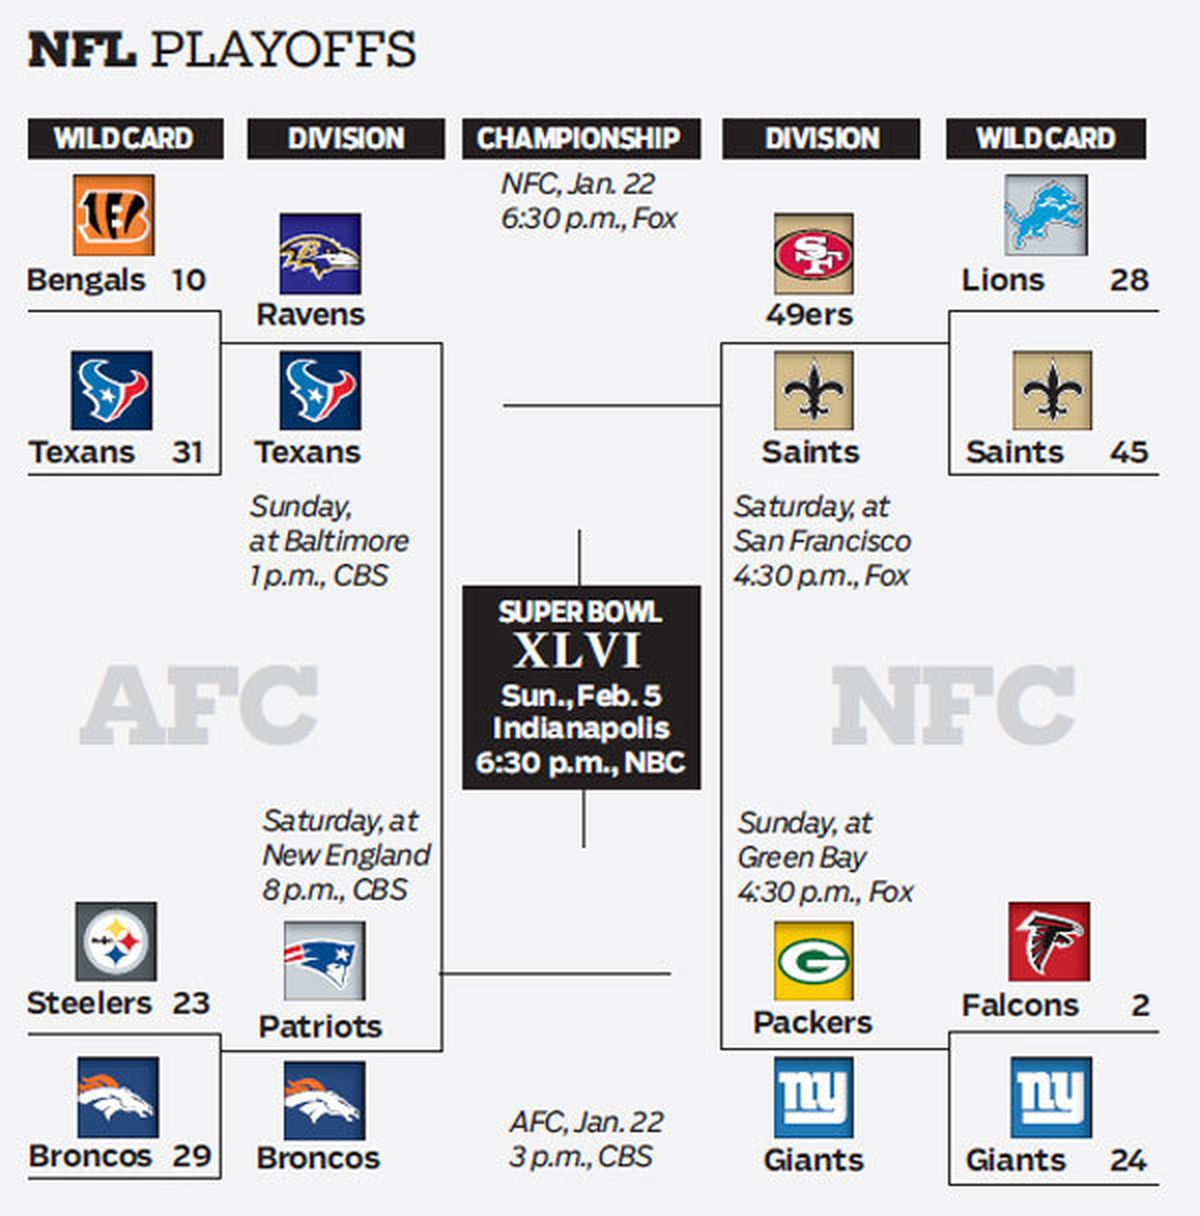 Playoff Picture Nfl 2021